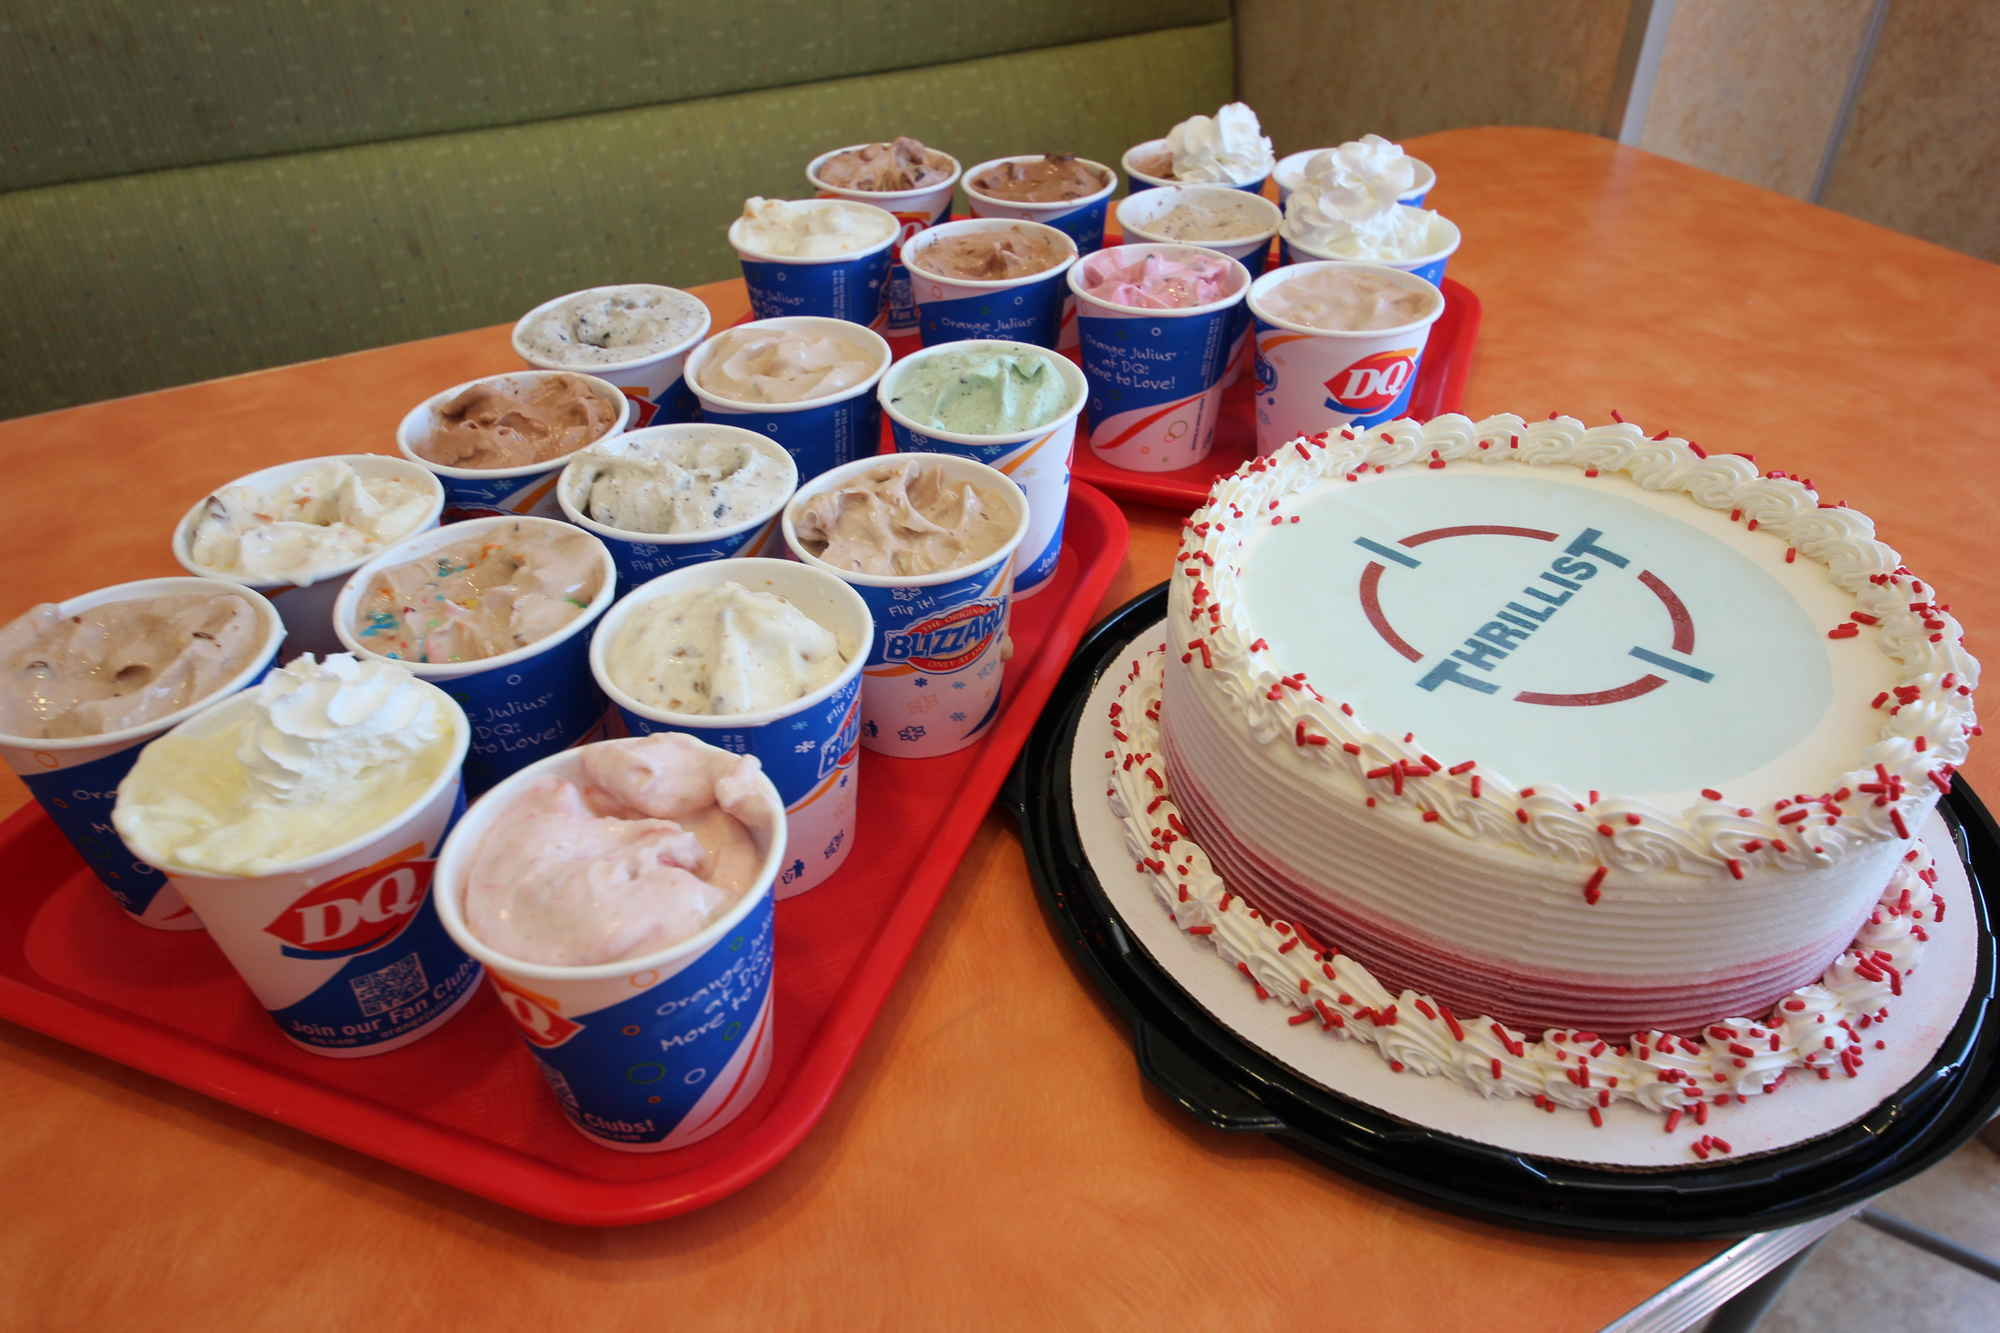 Strawberry Cheesecake Ice Cream Cake Dairy Queen